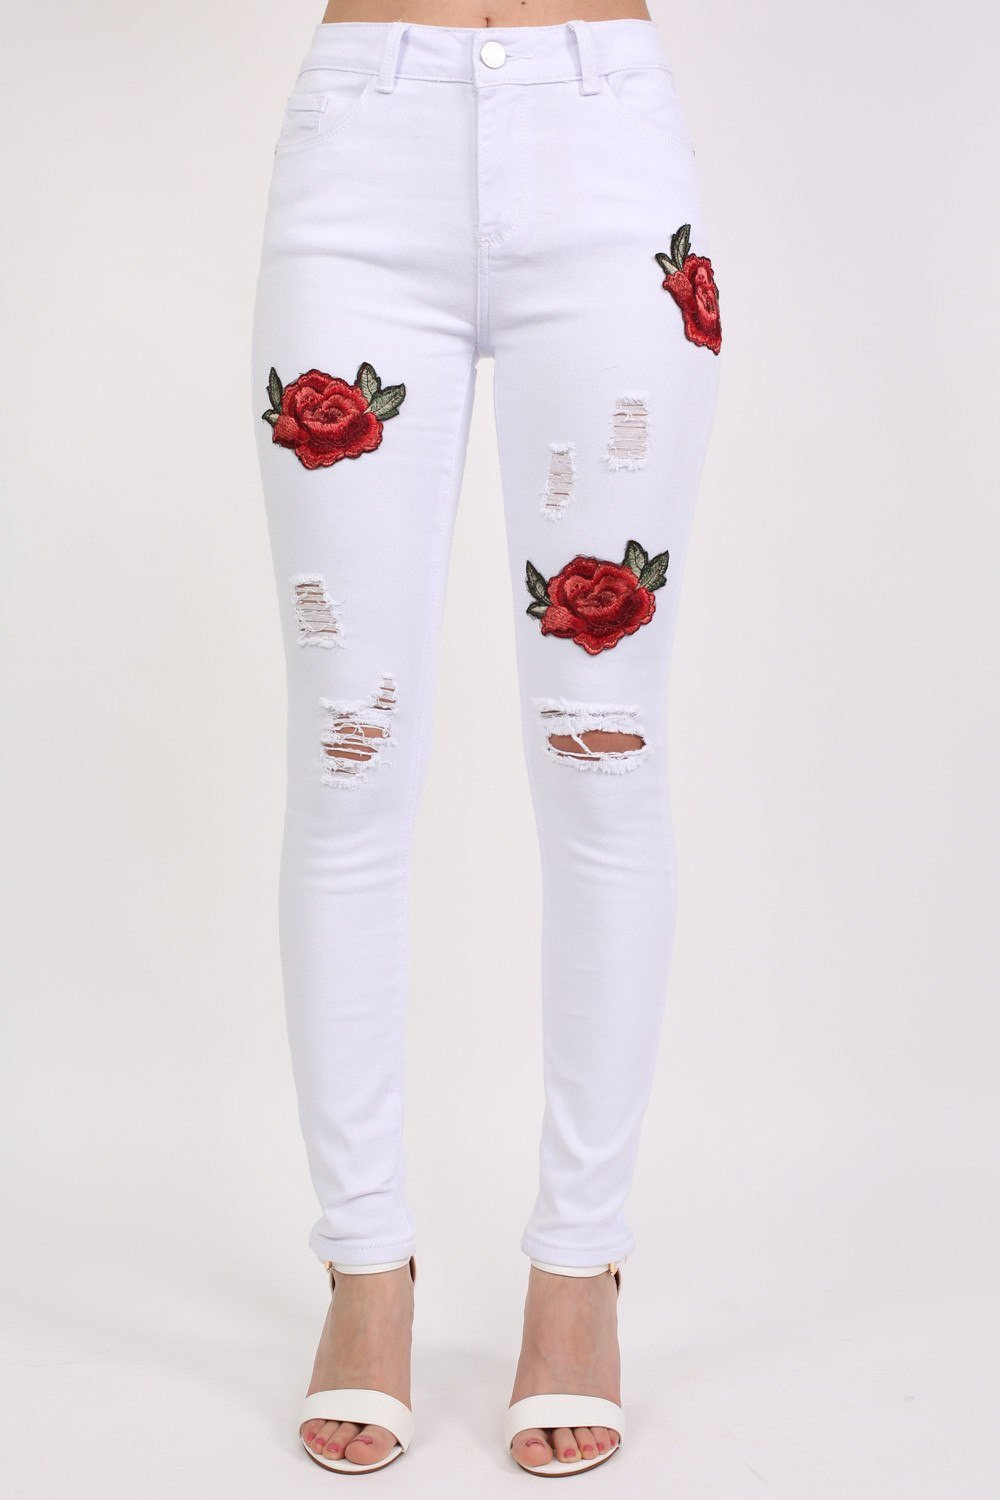 Floral Embroidered Ripped Skinny Jeans in White 0